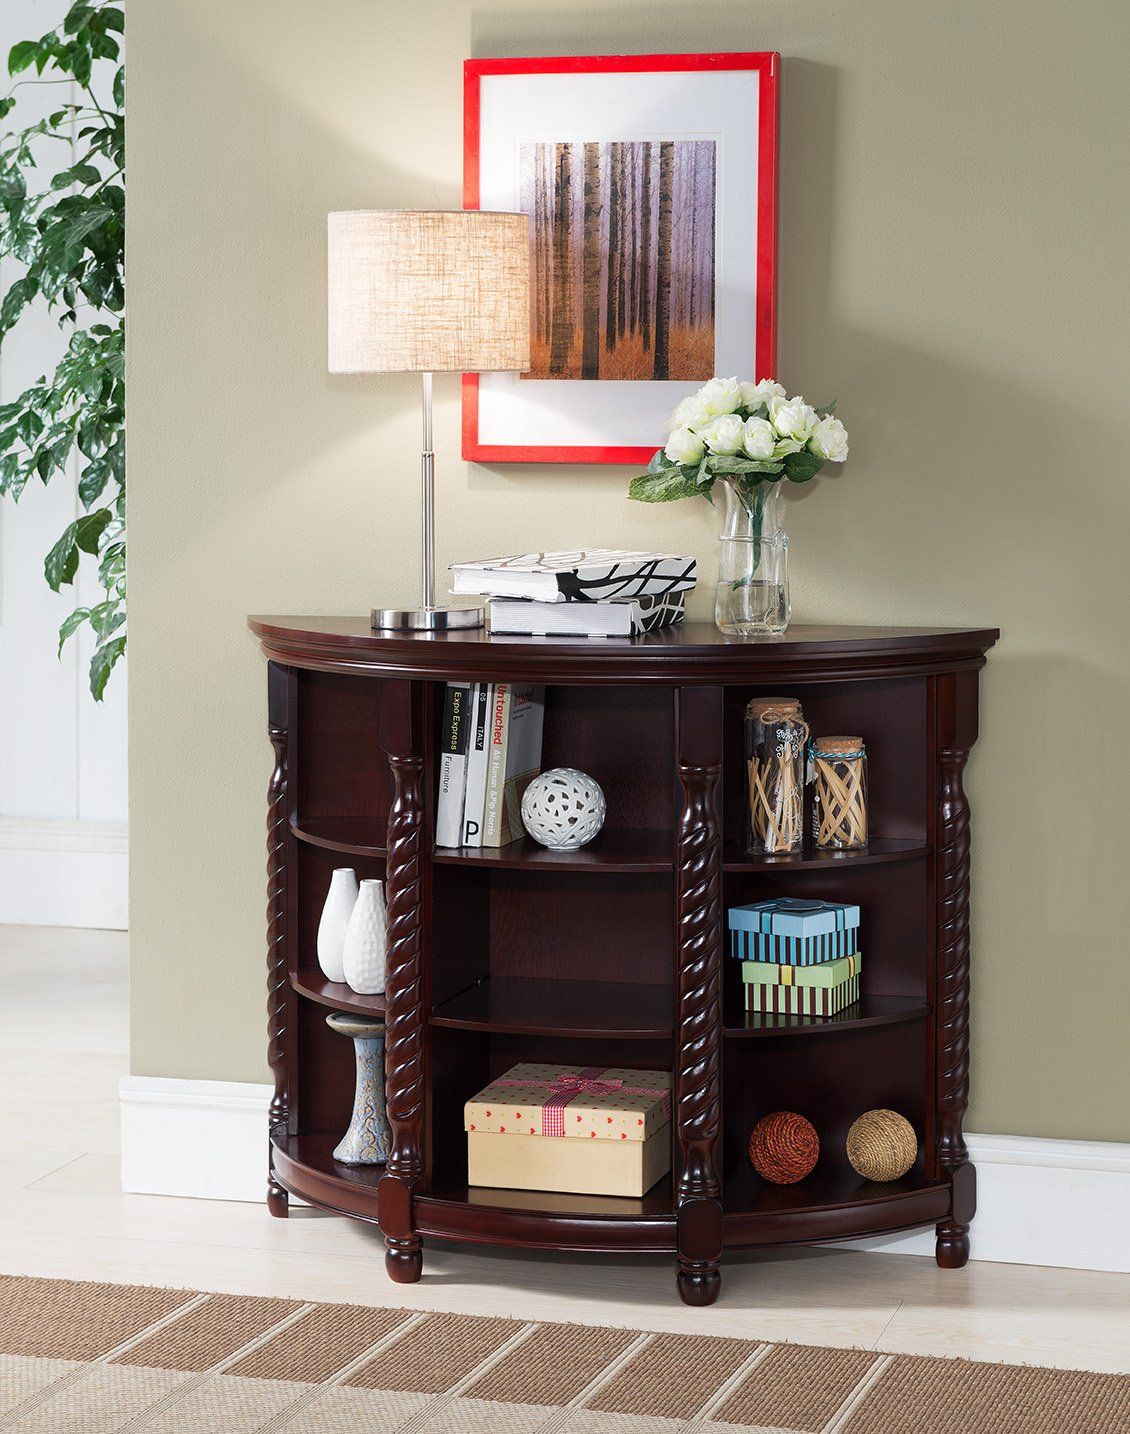 Amazon kings brand furniture wood entryway buffet console amazon kings brand furniture wood entryway buffet console sofa table cherry kitchen dining geotapseo Choice Image